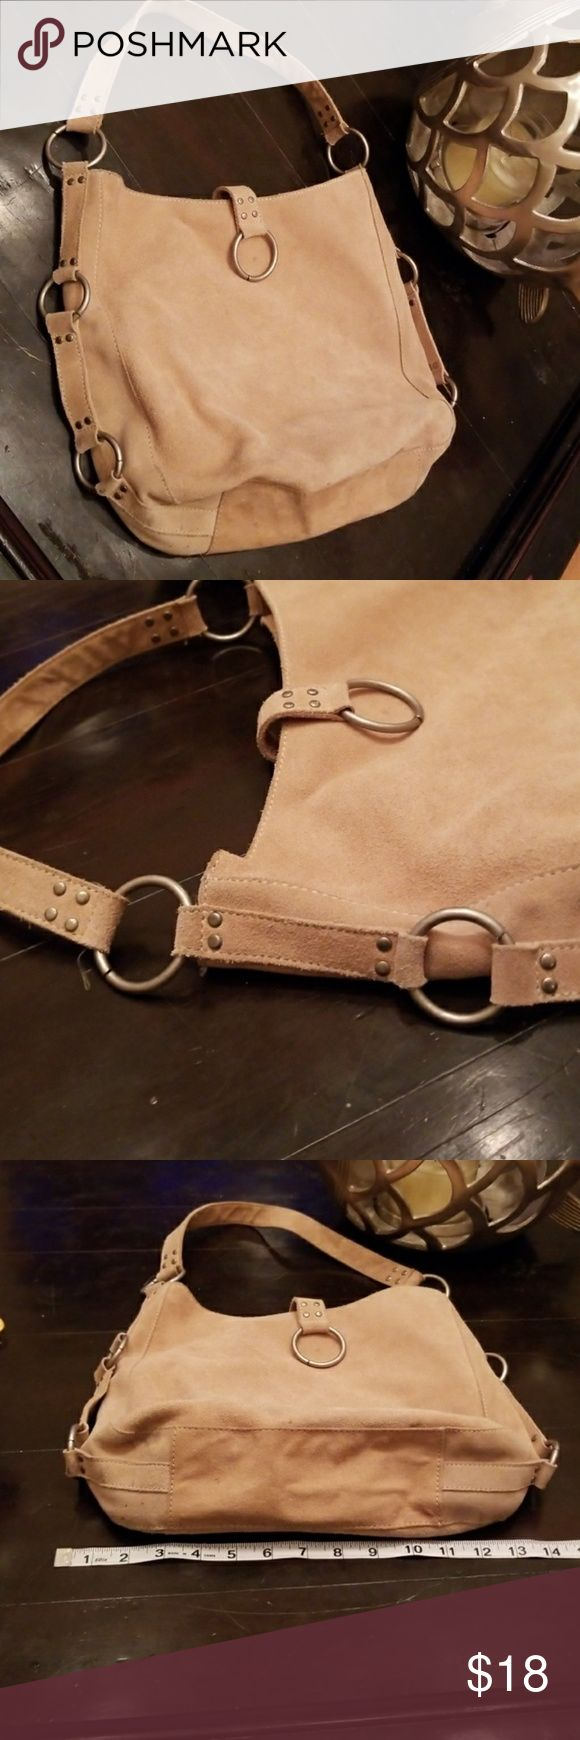 🦄100% COW LEATHER TOTE SILVER RINGS Absolutely stunning tan leather bag with silver rings adorning. Great condition. Pockets inside.    Also CHECK OUT my  🦄3 for $15🦄, 💋3 for $24💋 &♥️10 for $10♥️ SALE!  Why SHOP MY Closet? 💋Smoke/ Pet Free 💋OVER 1000 🌟🌟🌟🌟🌟RATINGS 💋POSH AMBASSADOR &TOP 10% Seller  💋TOP RATED 💋 FAST SHIPPER  💋BUNDLES DISCOUNT 💋EARN VIP DOLLARS W/ EVERY PURCHASE ❤HAPPY POSHING!!! 💕 Old Navy Bags